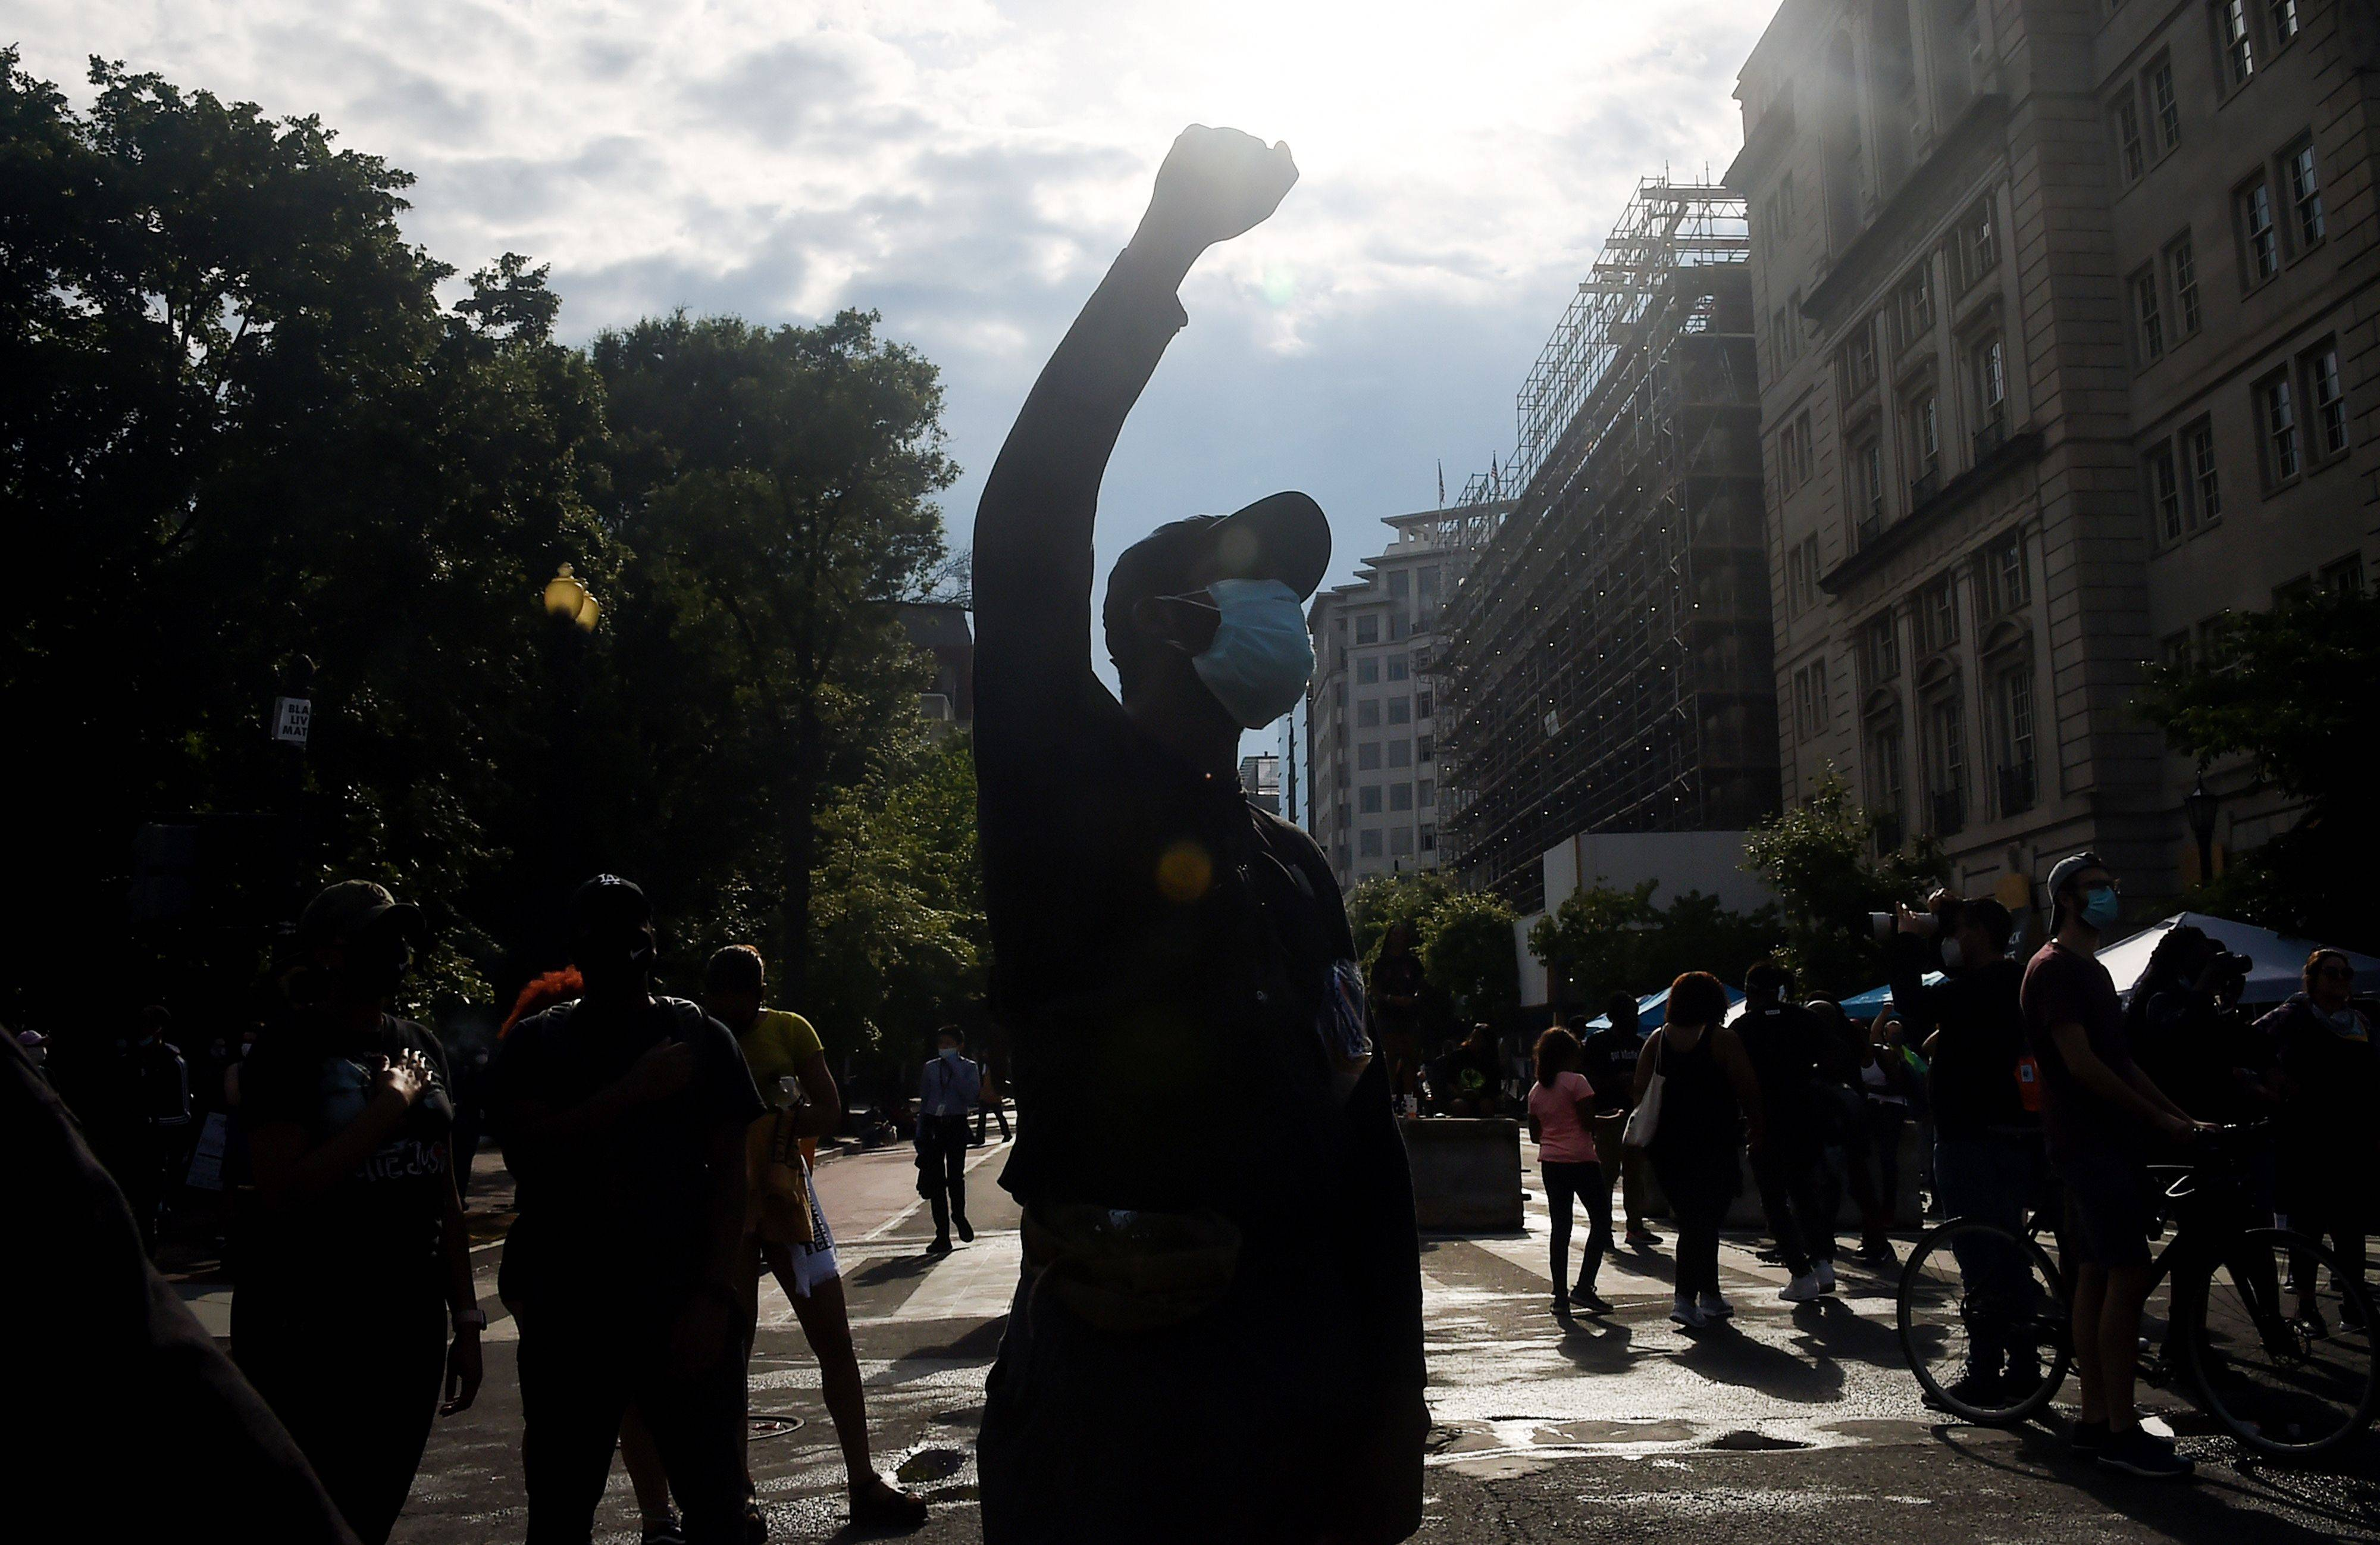 A demonstrator raises his fist near the White House. (Olivier Douliery/AFP via Getty Images)